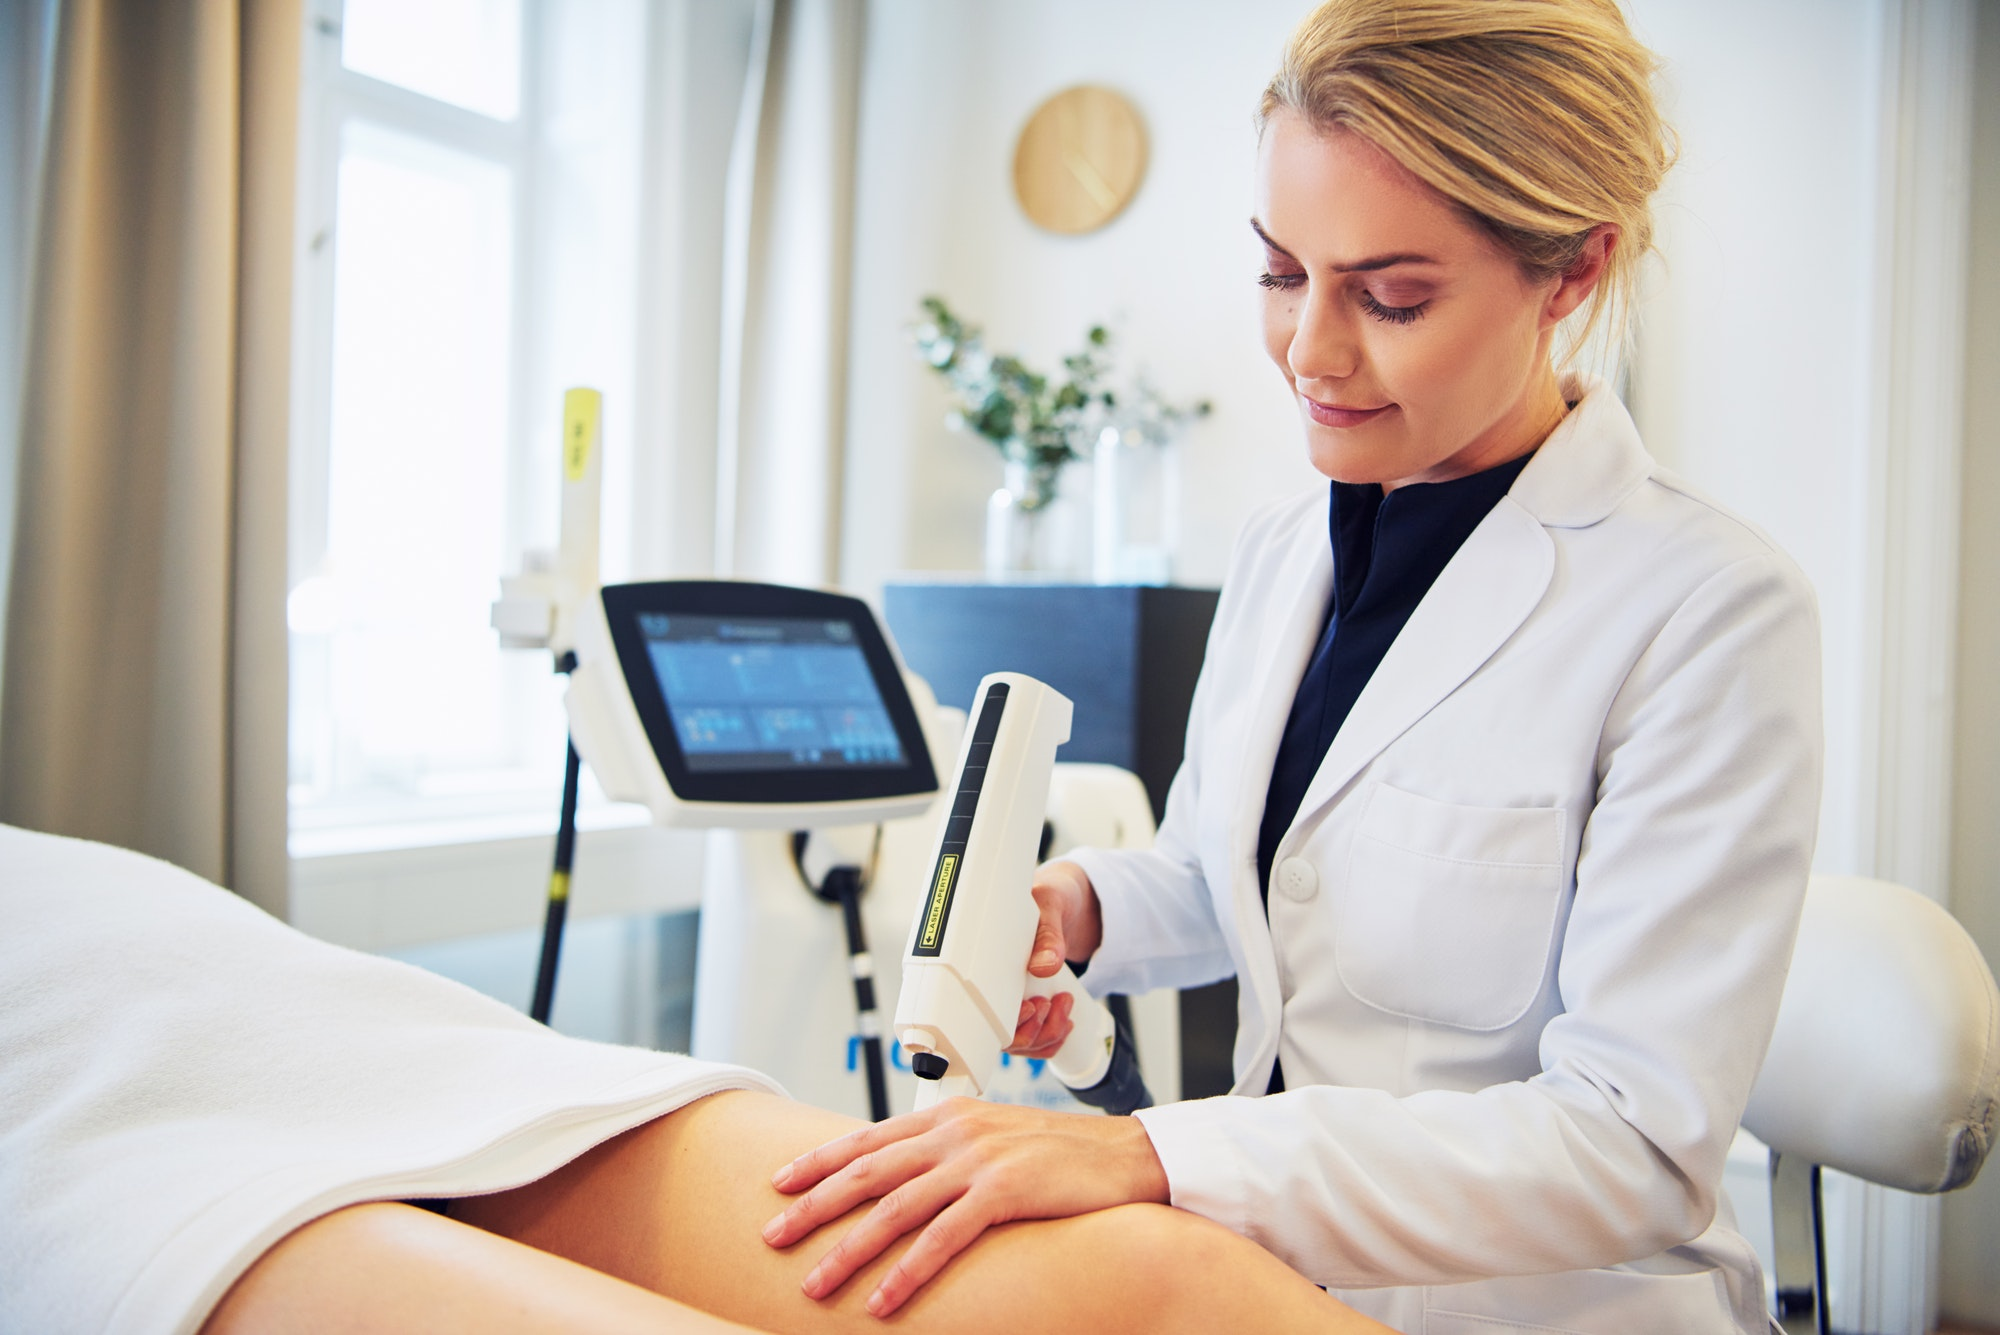 Clinic technician performing electrolysis on a female client's leg